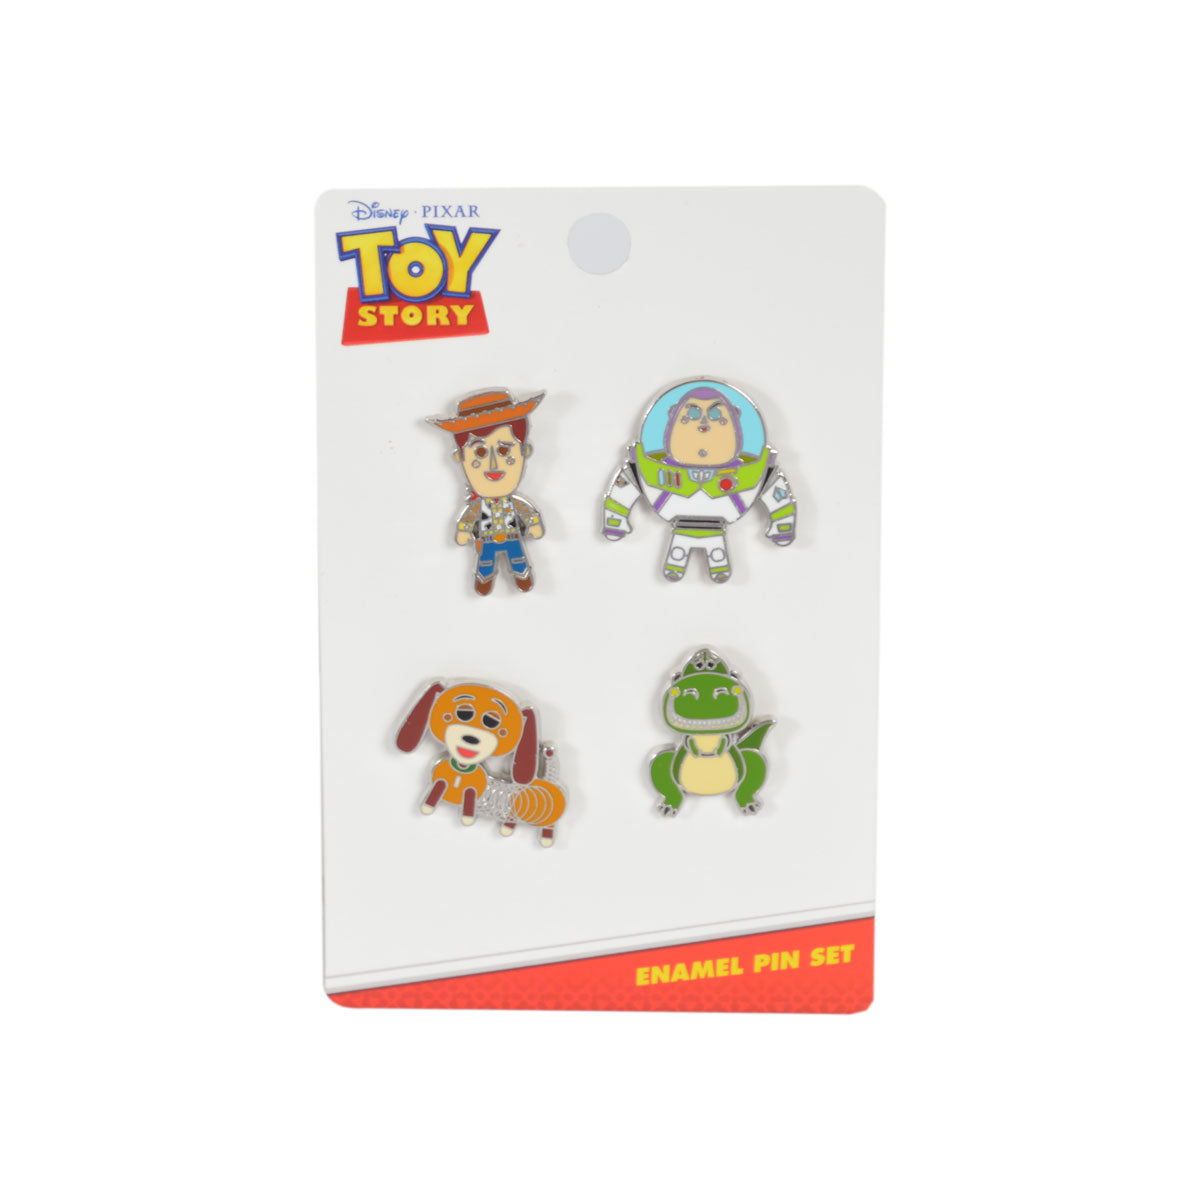 4-Piece Pin Set - Toy Story